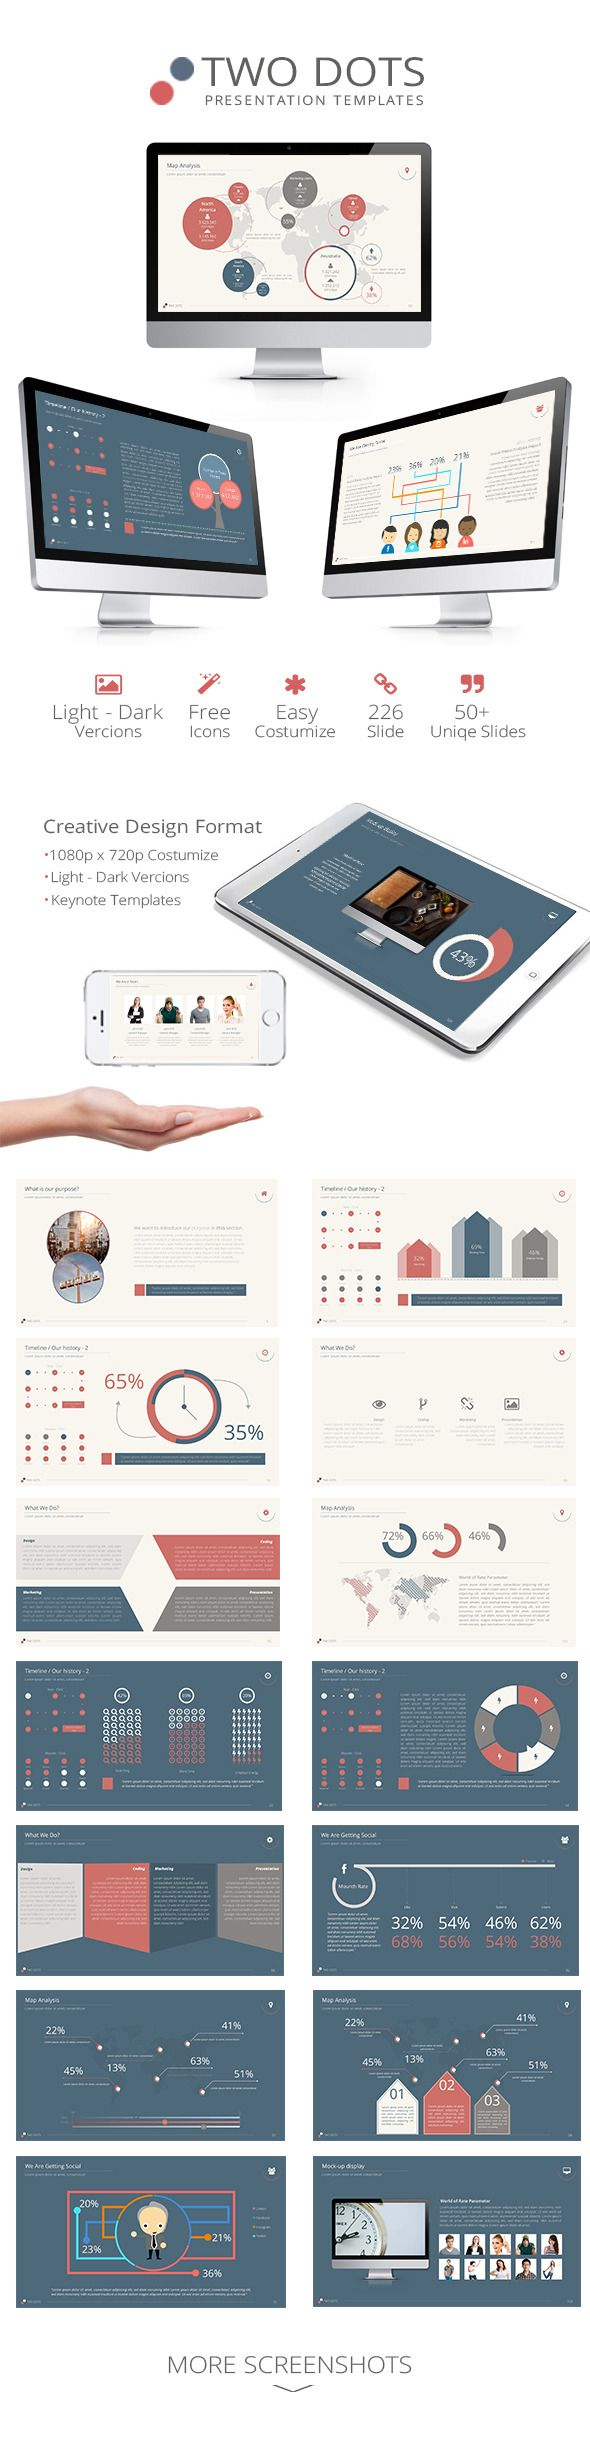 Two Dots PowerPoint Presentation Templates - Creative PowerPoint Templates